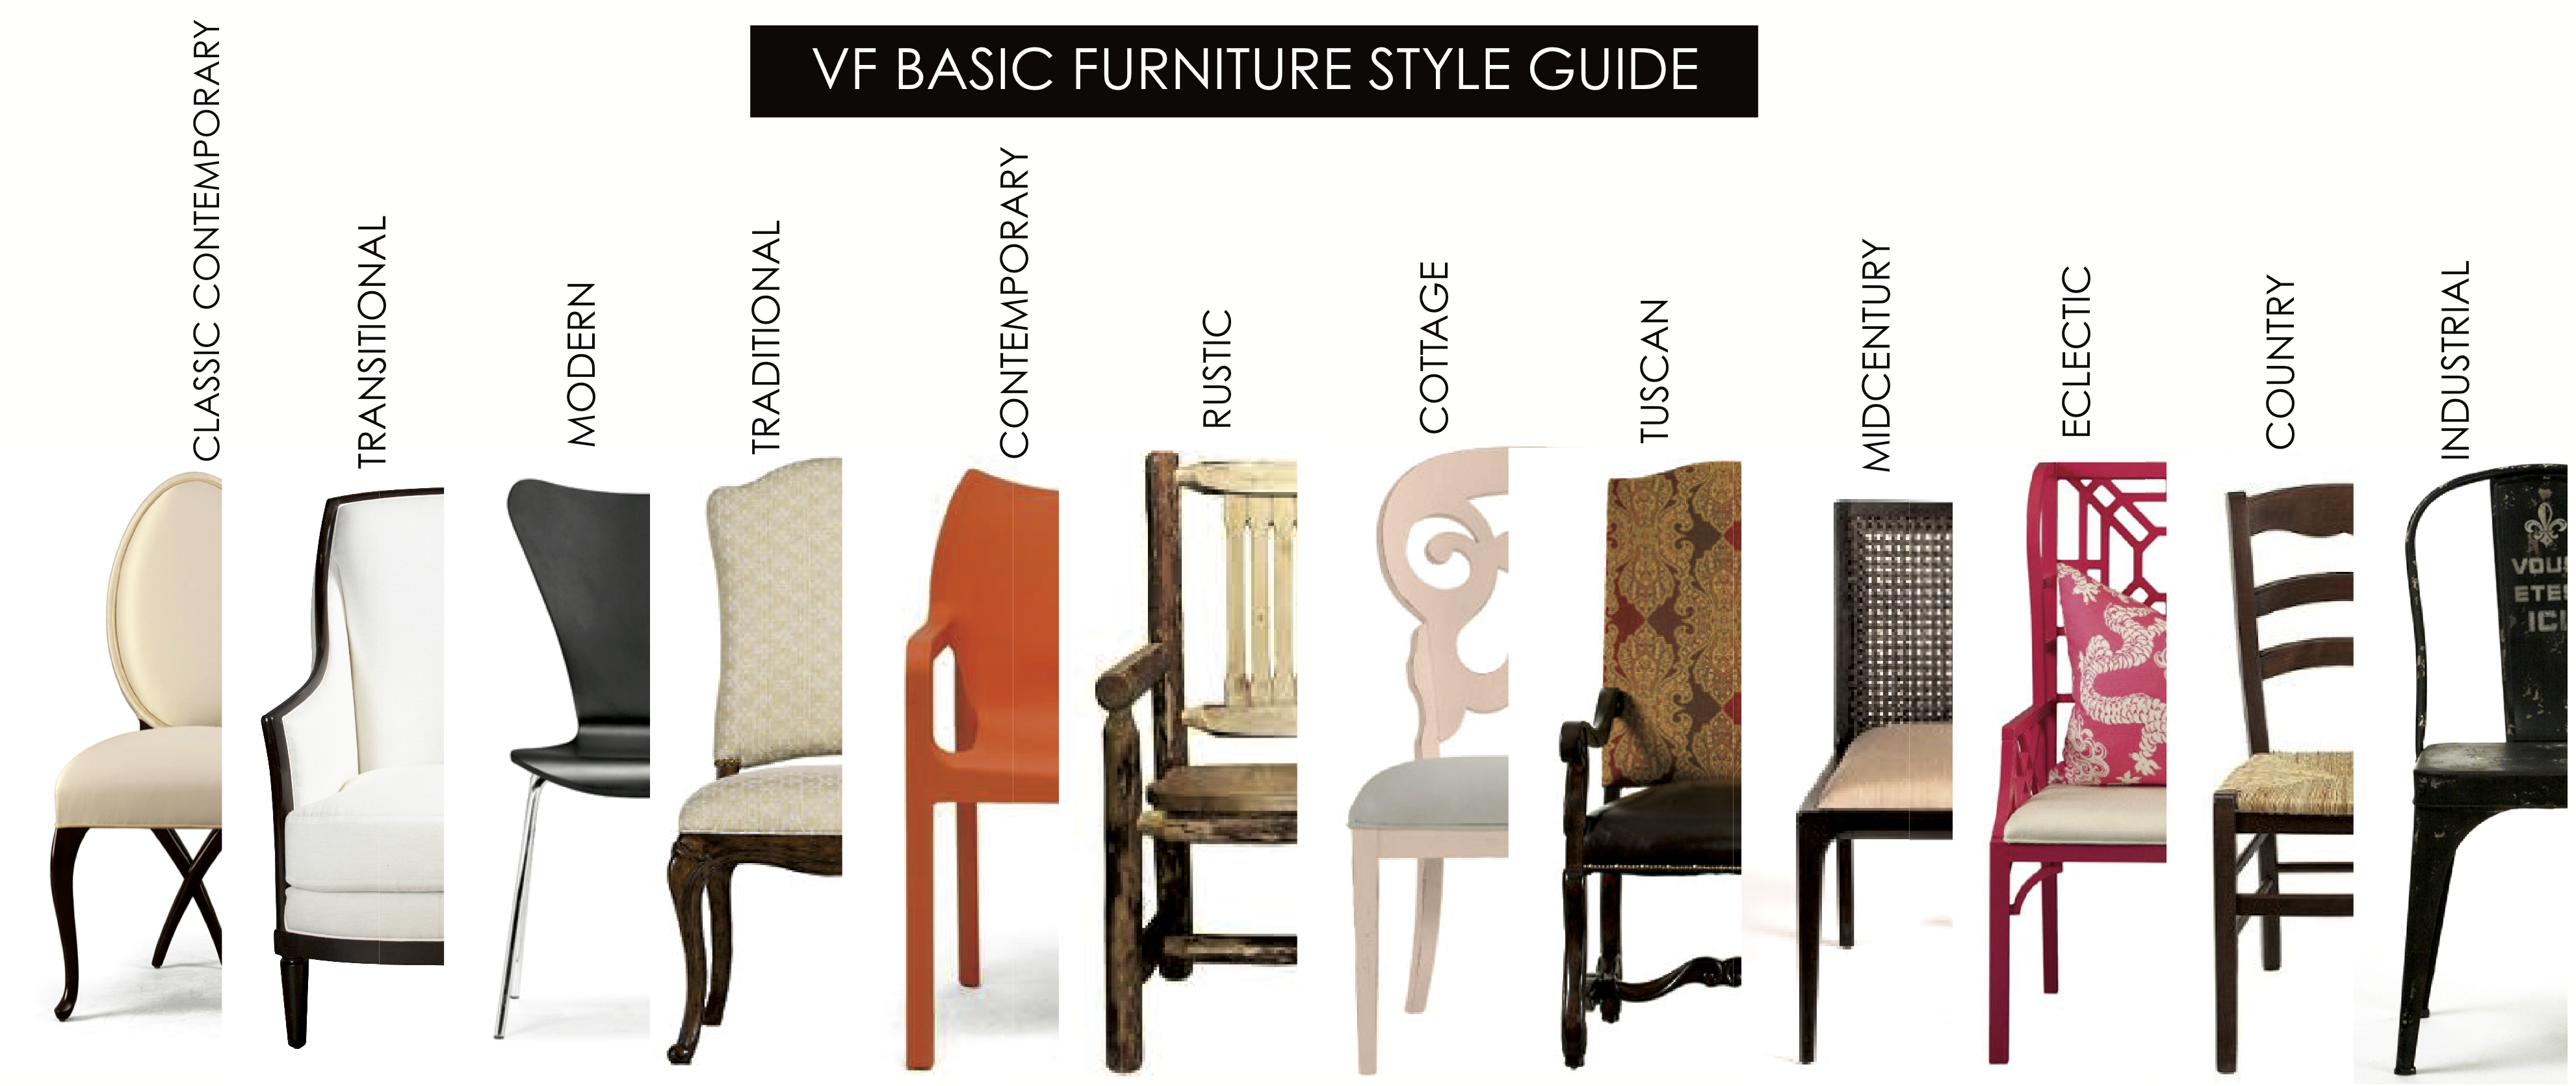 Furniture style basics 101 vf basic bright fun and for Different types of design styles